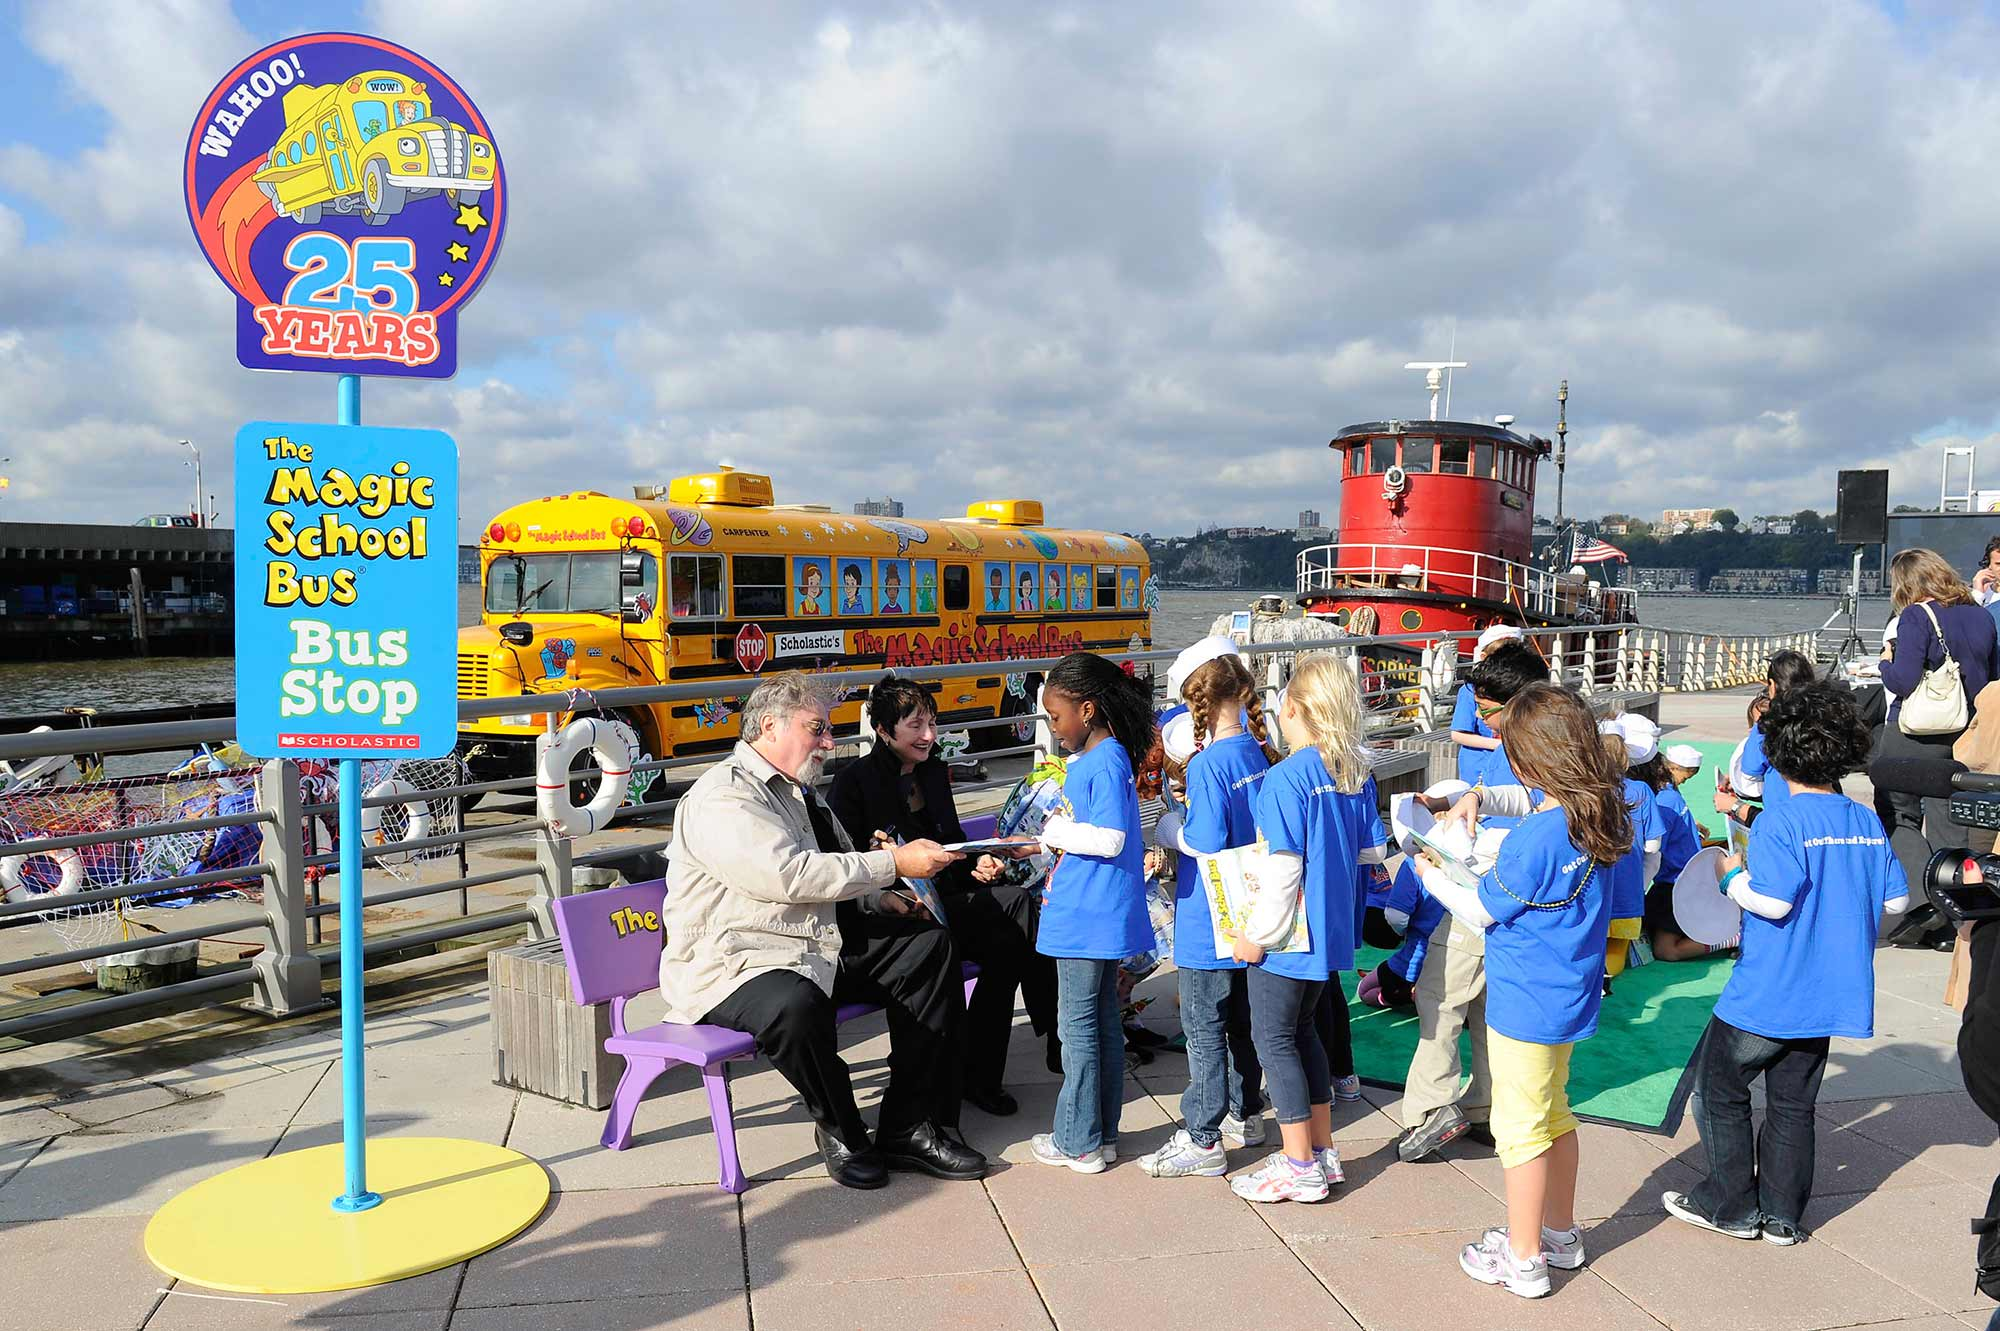 Students participate in a meet and greet with the author and illustrator of Scholastic's popular series, The Magic School Bus.